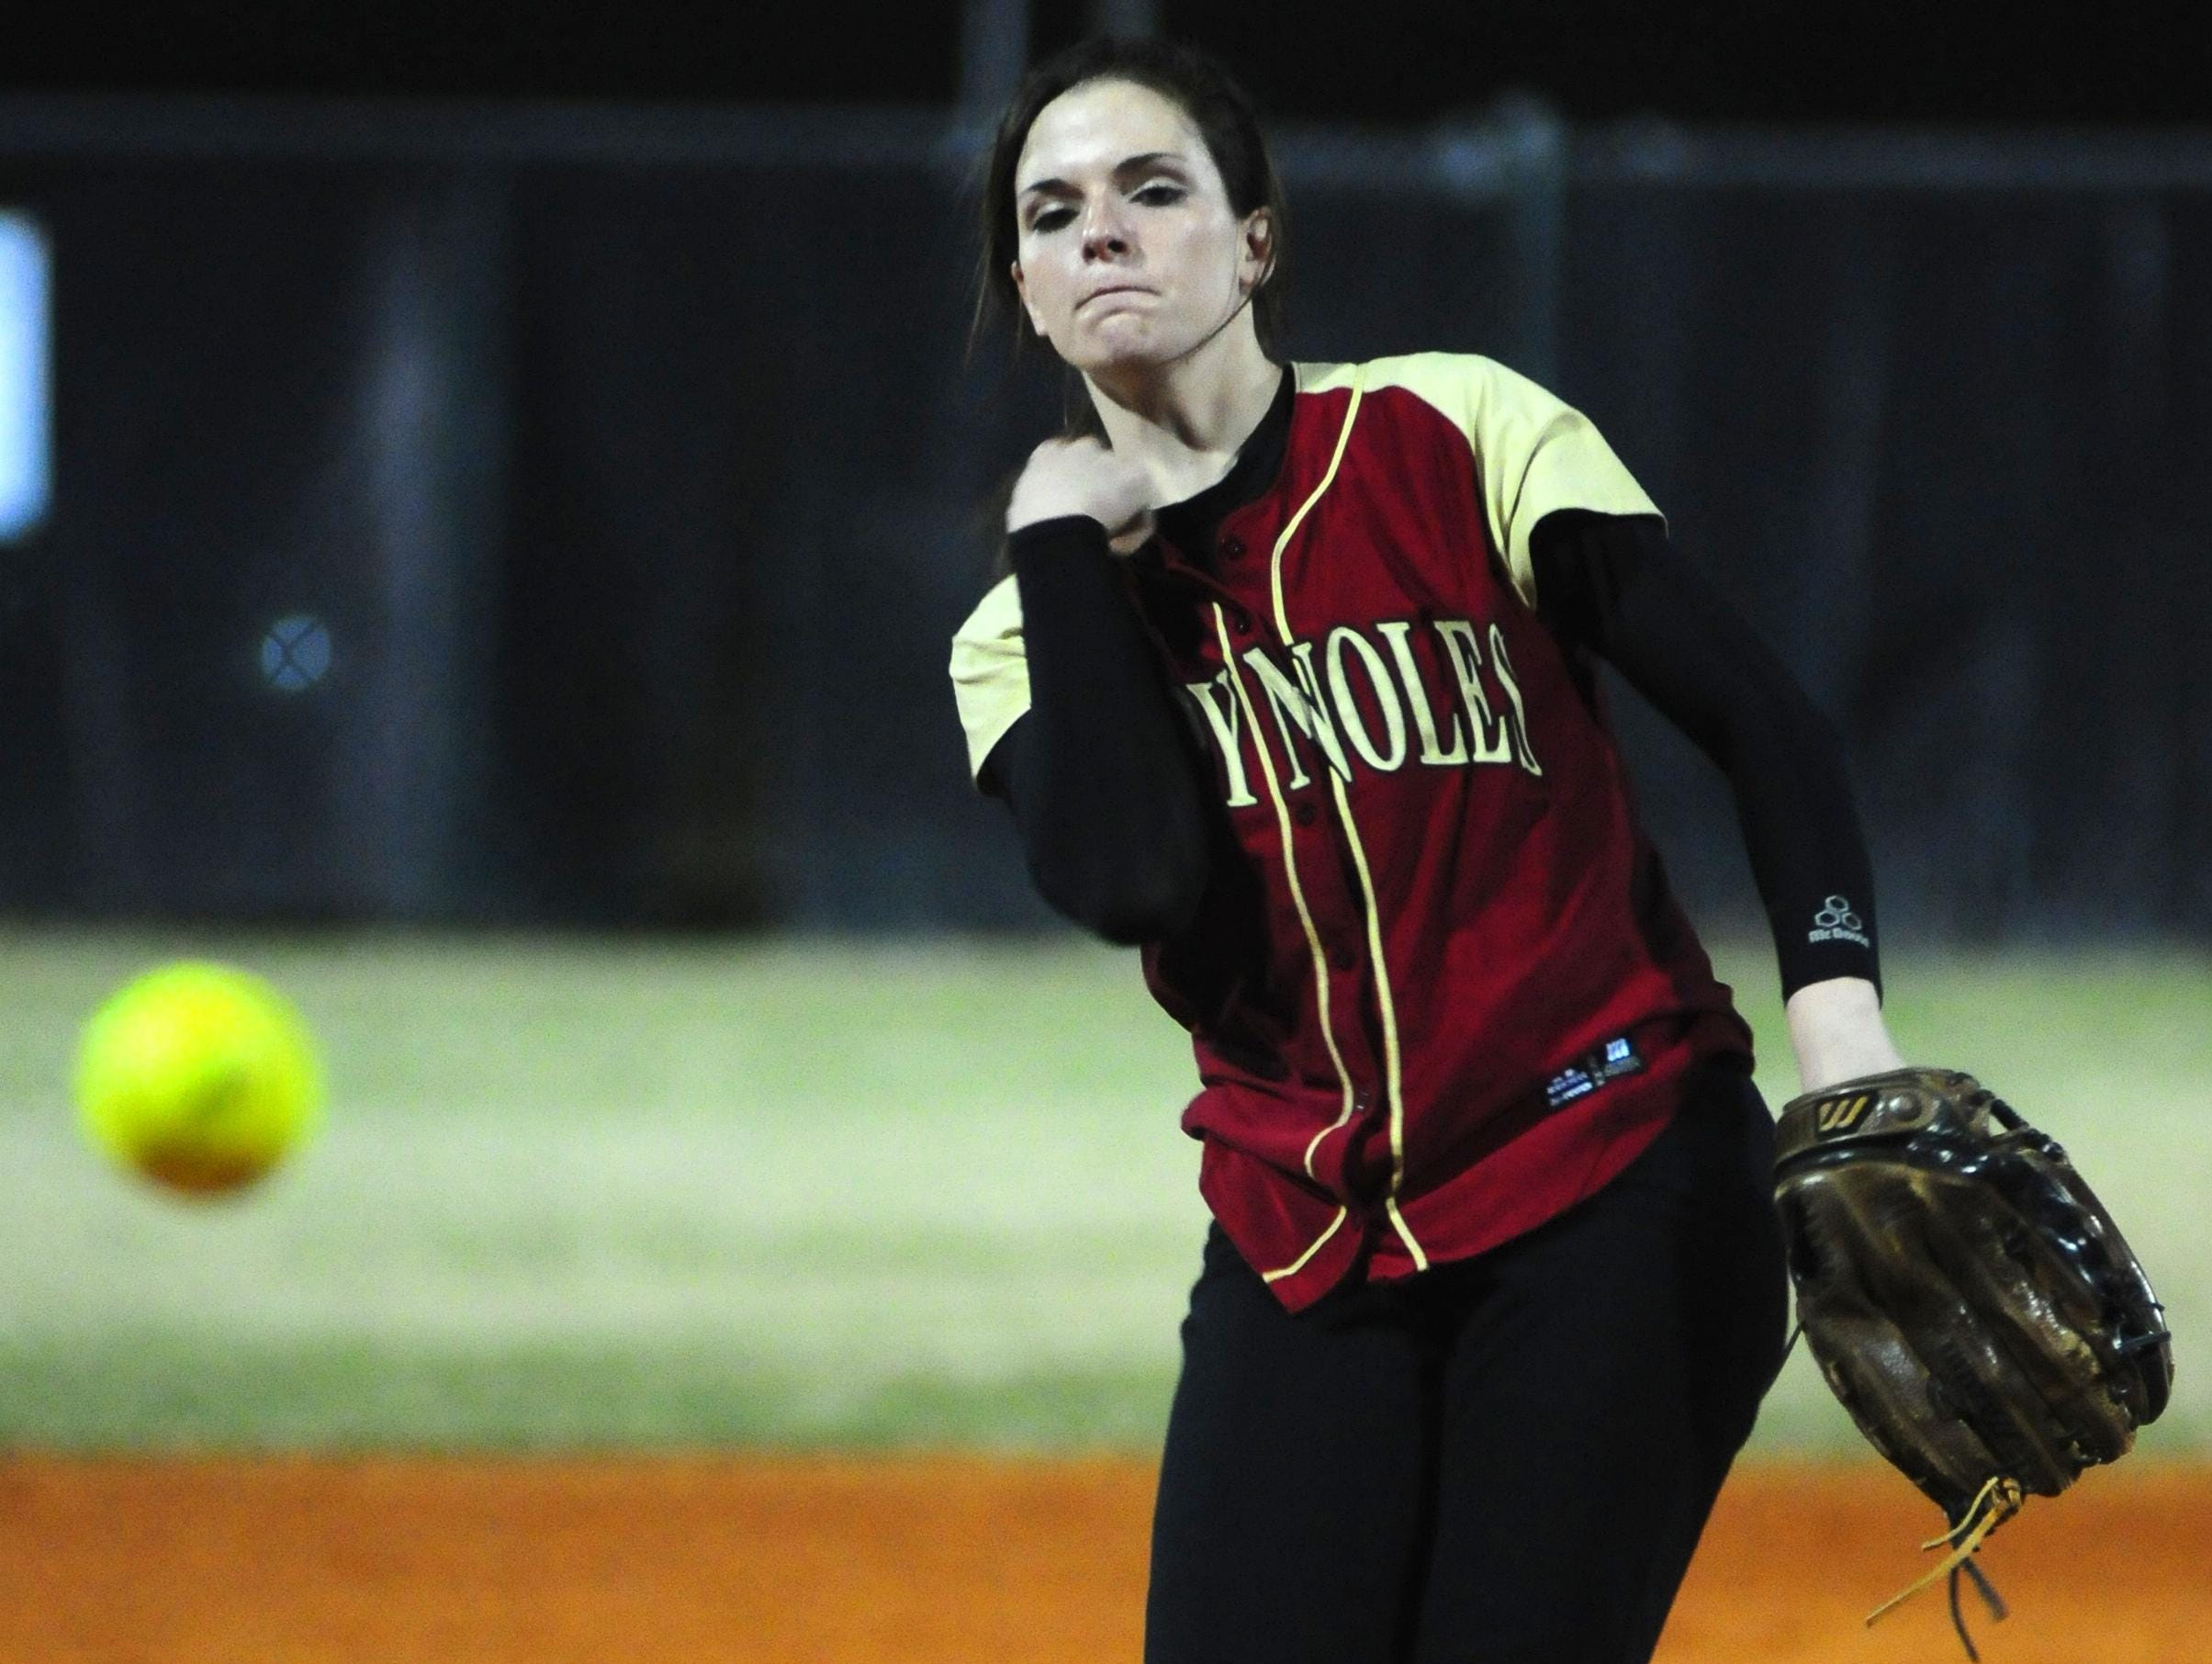 Florida High pitcher Taylor Rossman tosses a pitch during a game against Godby during her days as a dominating high school pitcher. Rossman is entering her senior at Jacksonville University.